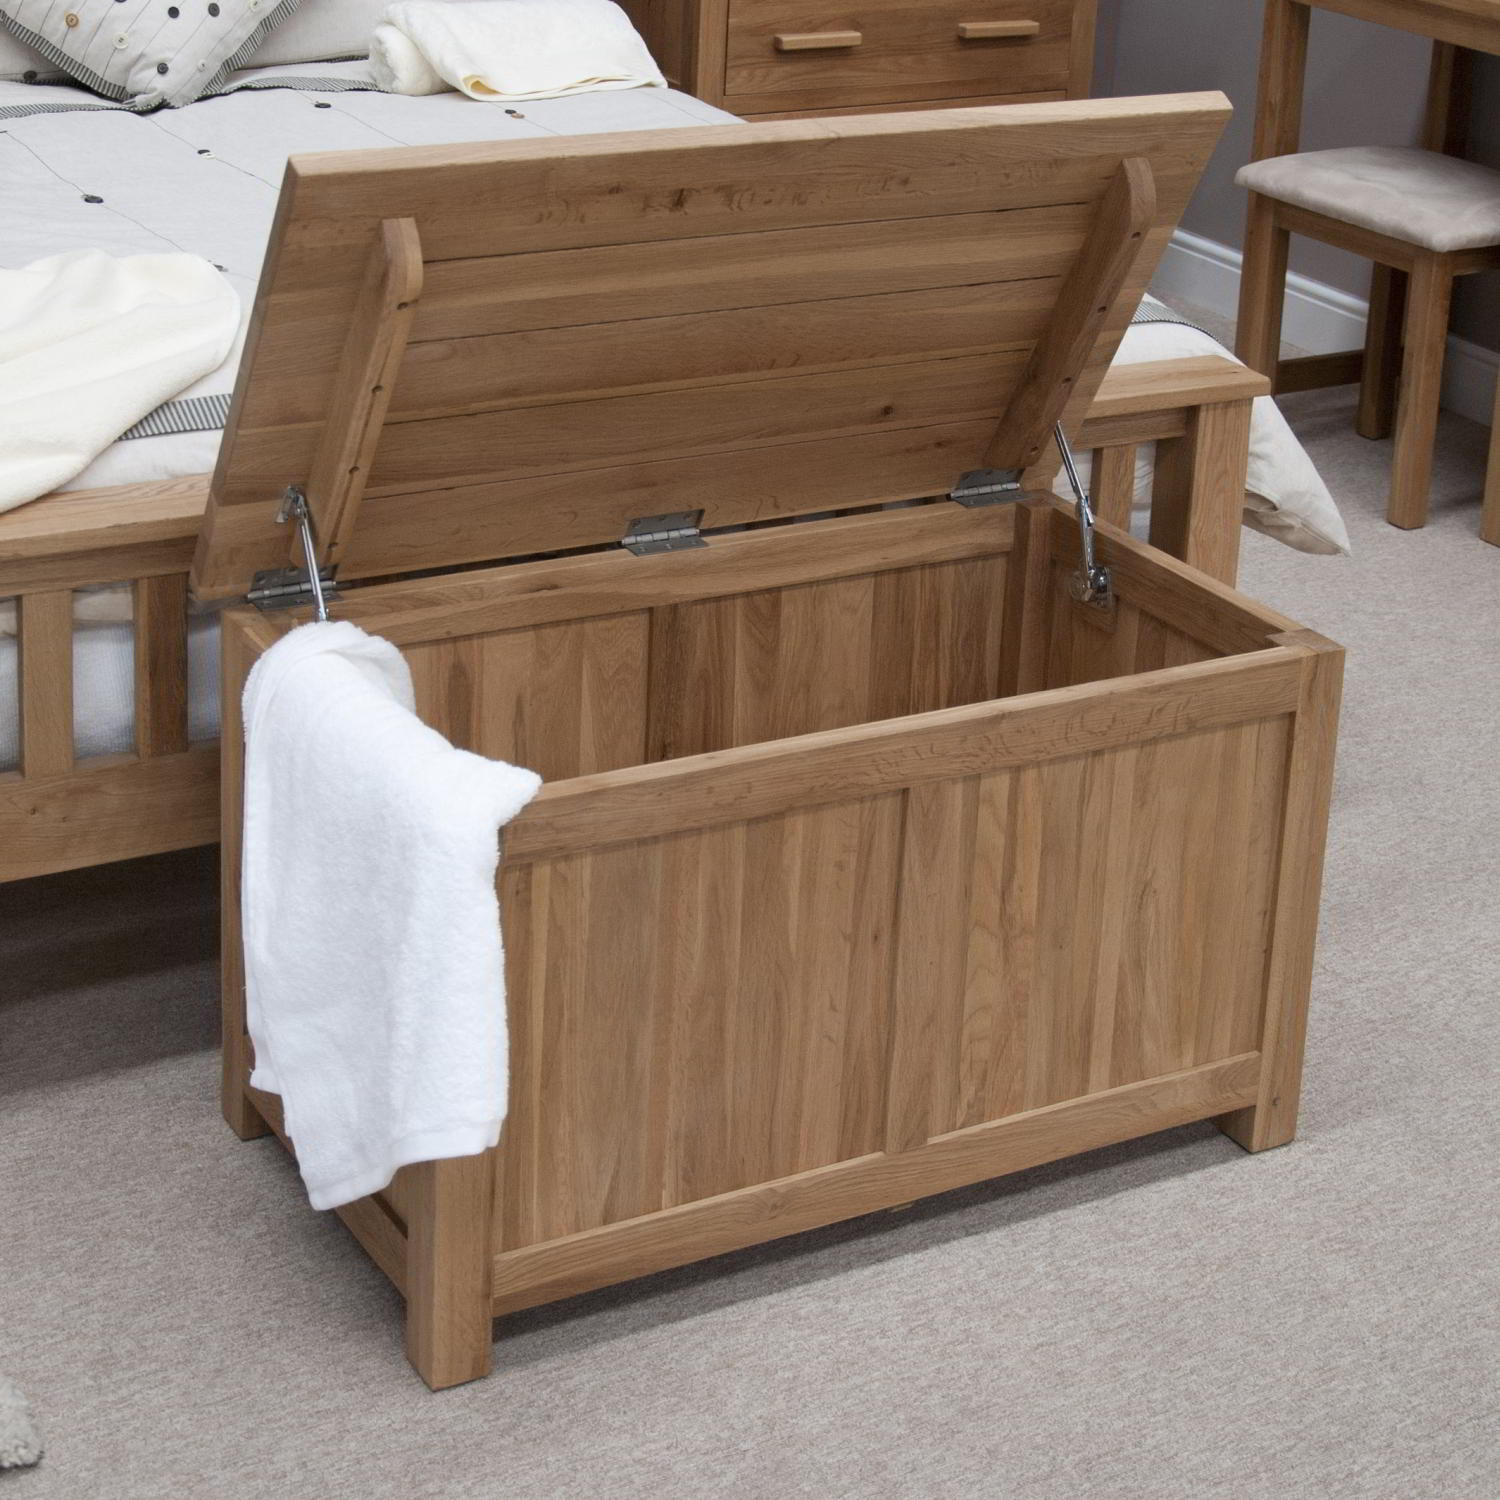 Eton solid oak bedroom furniture blanket storage box chest for Furniture box